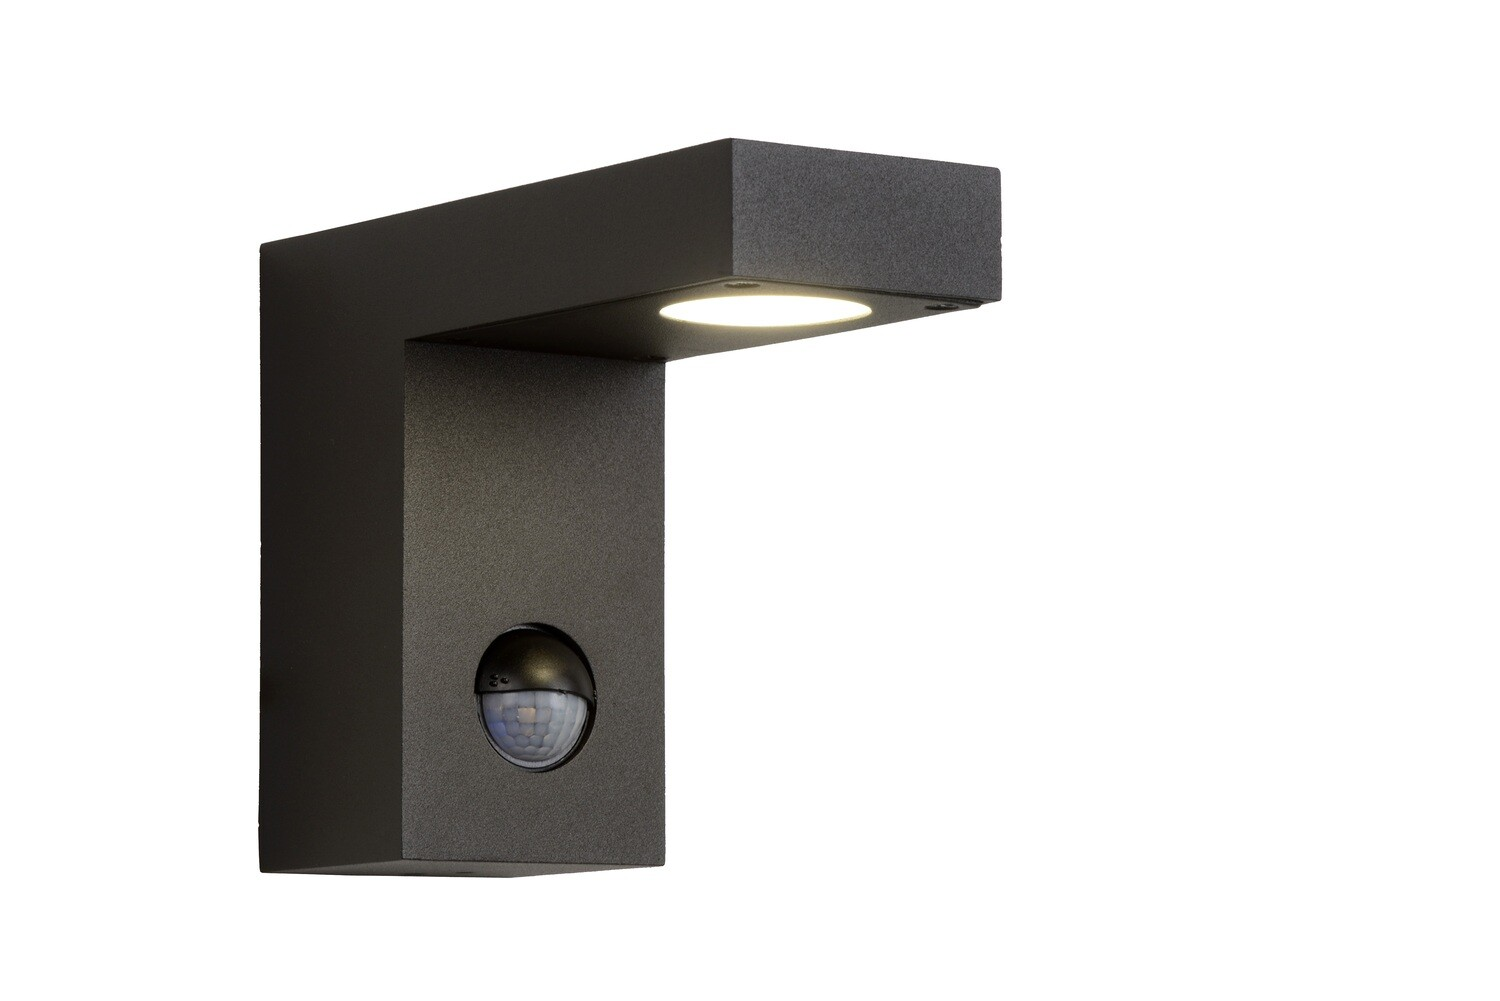 TEXAS-IR Wall Light with Motion Sensor Outdoor LED 1x8W 3000K IP54 Anthracite